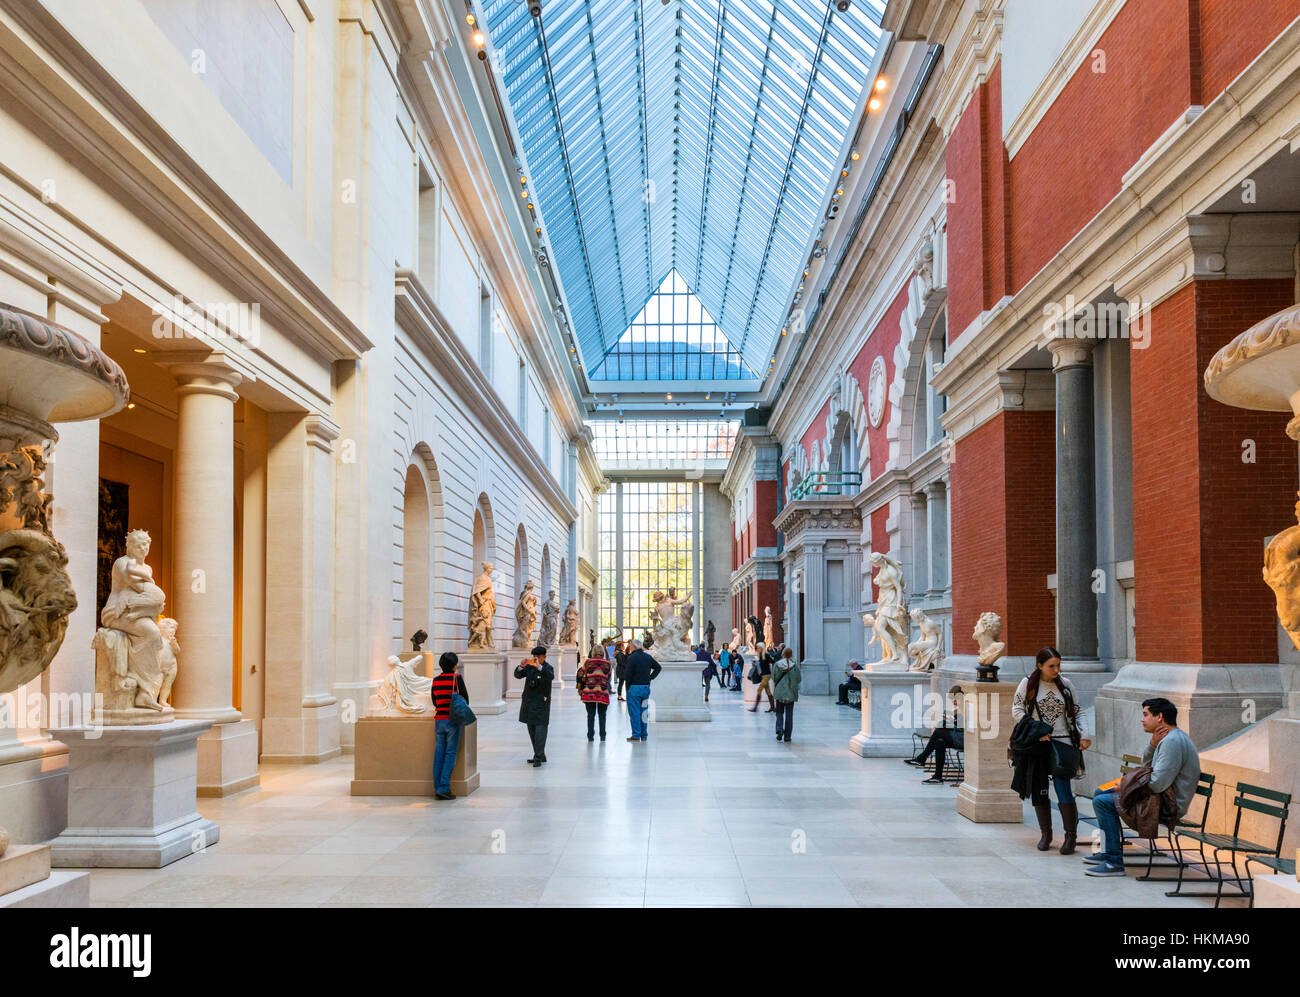 Metropolitan Museum of Art, New York. The Charles Engelhard Court at The Metropolitan Museum of Art, 5th Avenue, - Stock Image